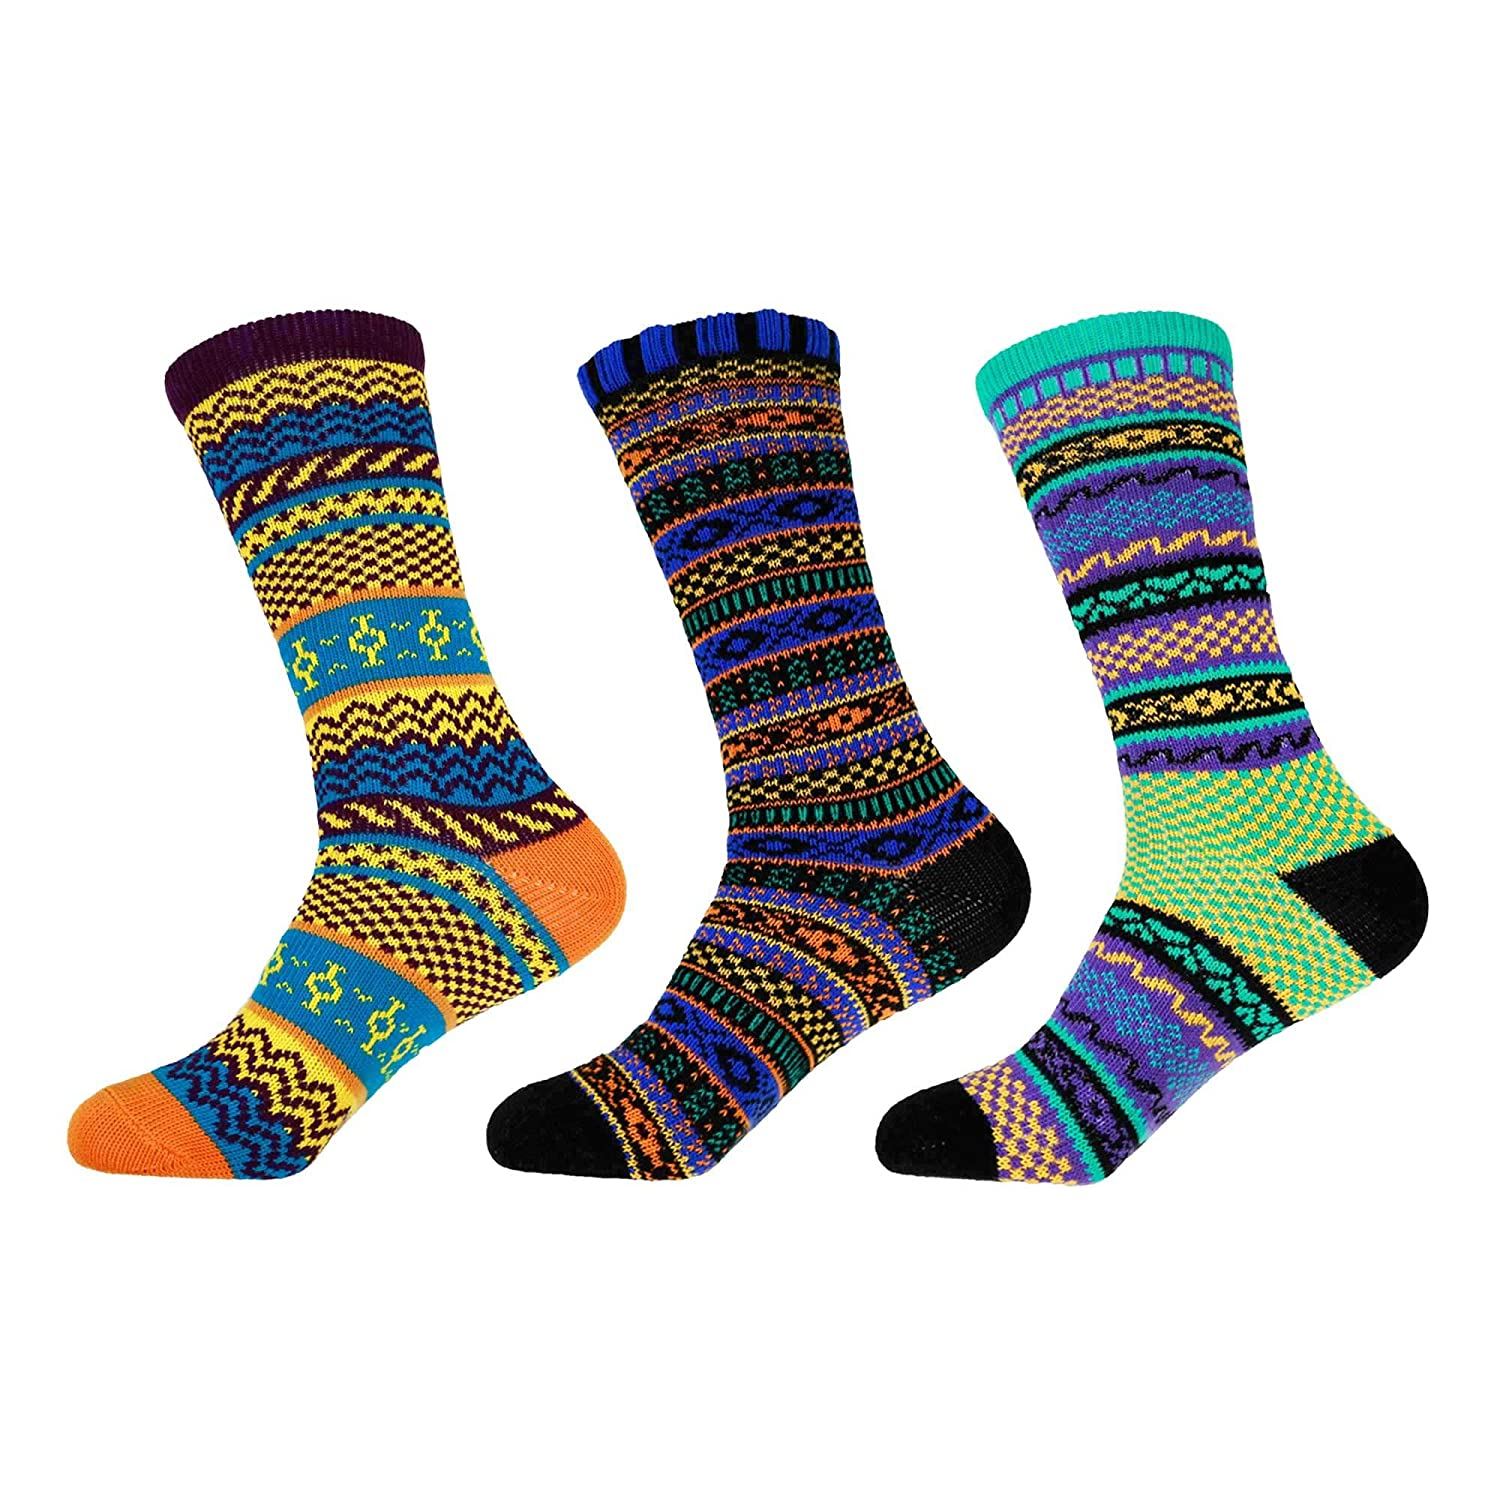 30c5a896ac0e Women's Vintage Style Knitted Fashion Novelty Patterned Funky Crazy  Designer Argyle Striped Dress Colorful Cotton Crew Socks - 3A-M, Size M - 3  prs at ...